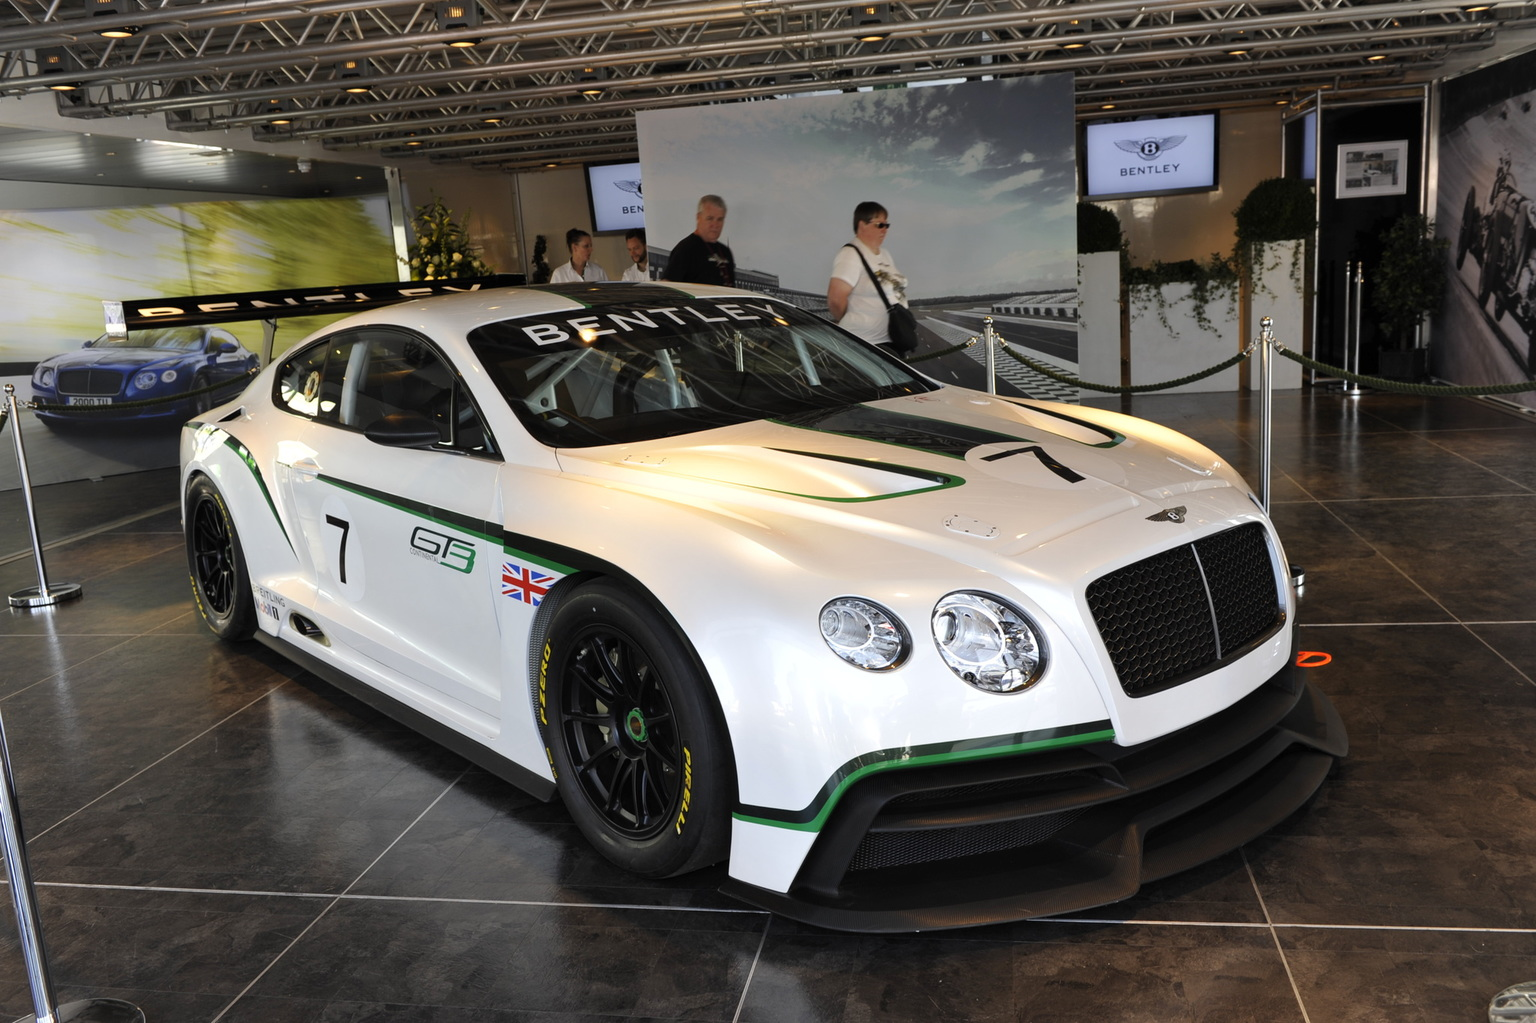 2012 Bentley Continental GT3 concept Gallery